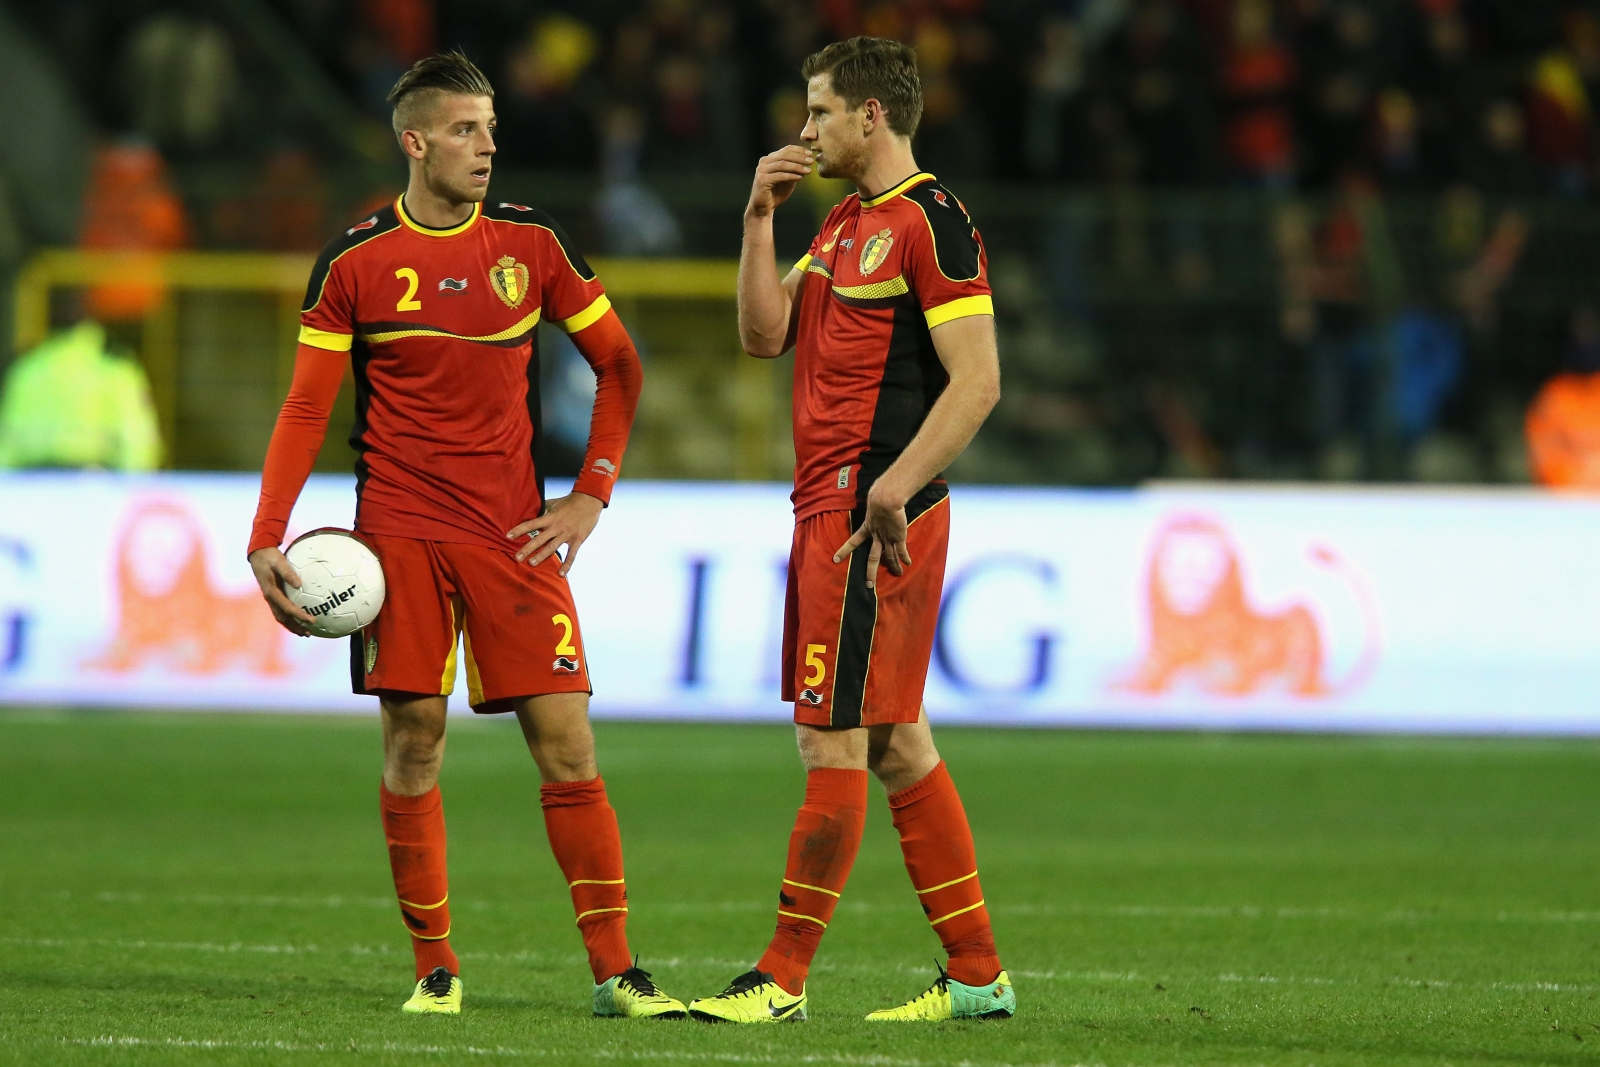 Toby Alderweireld and Jan Vertonghen